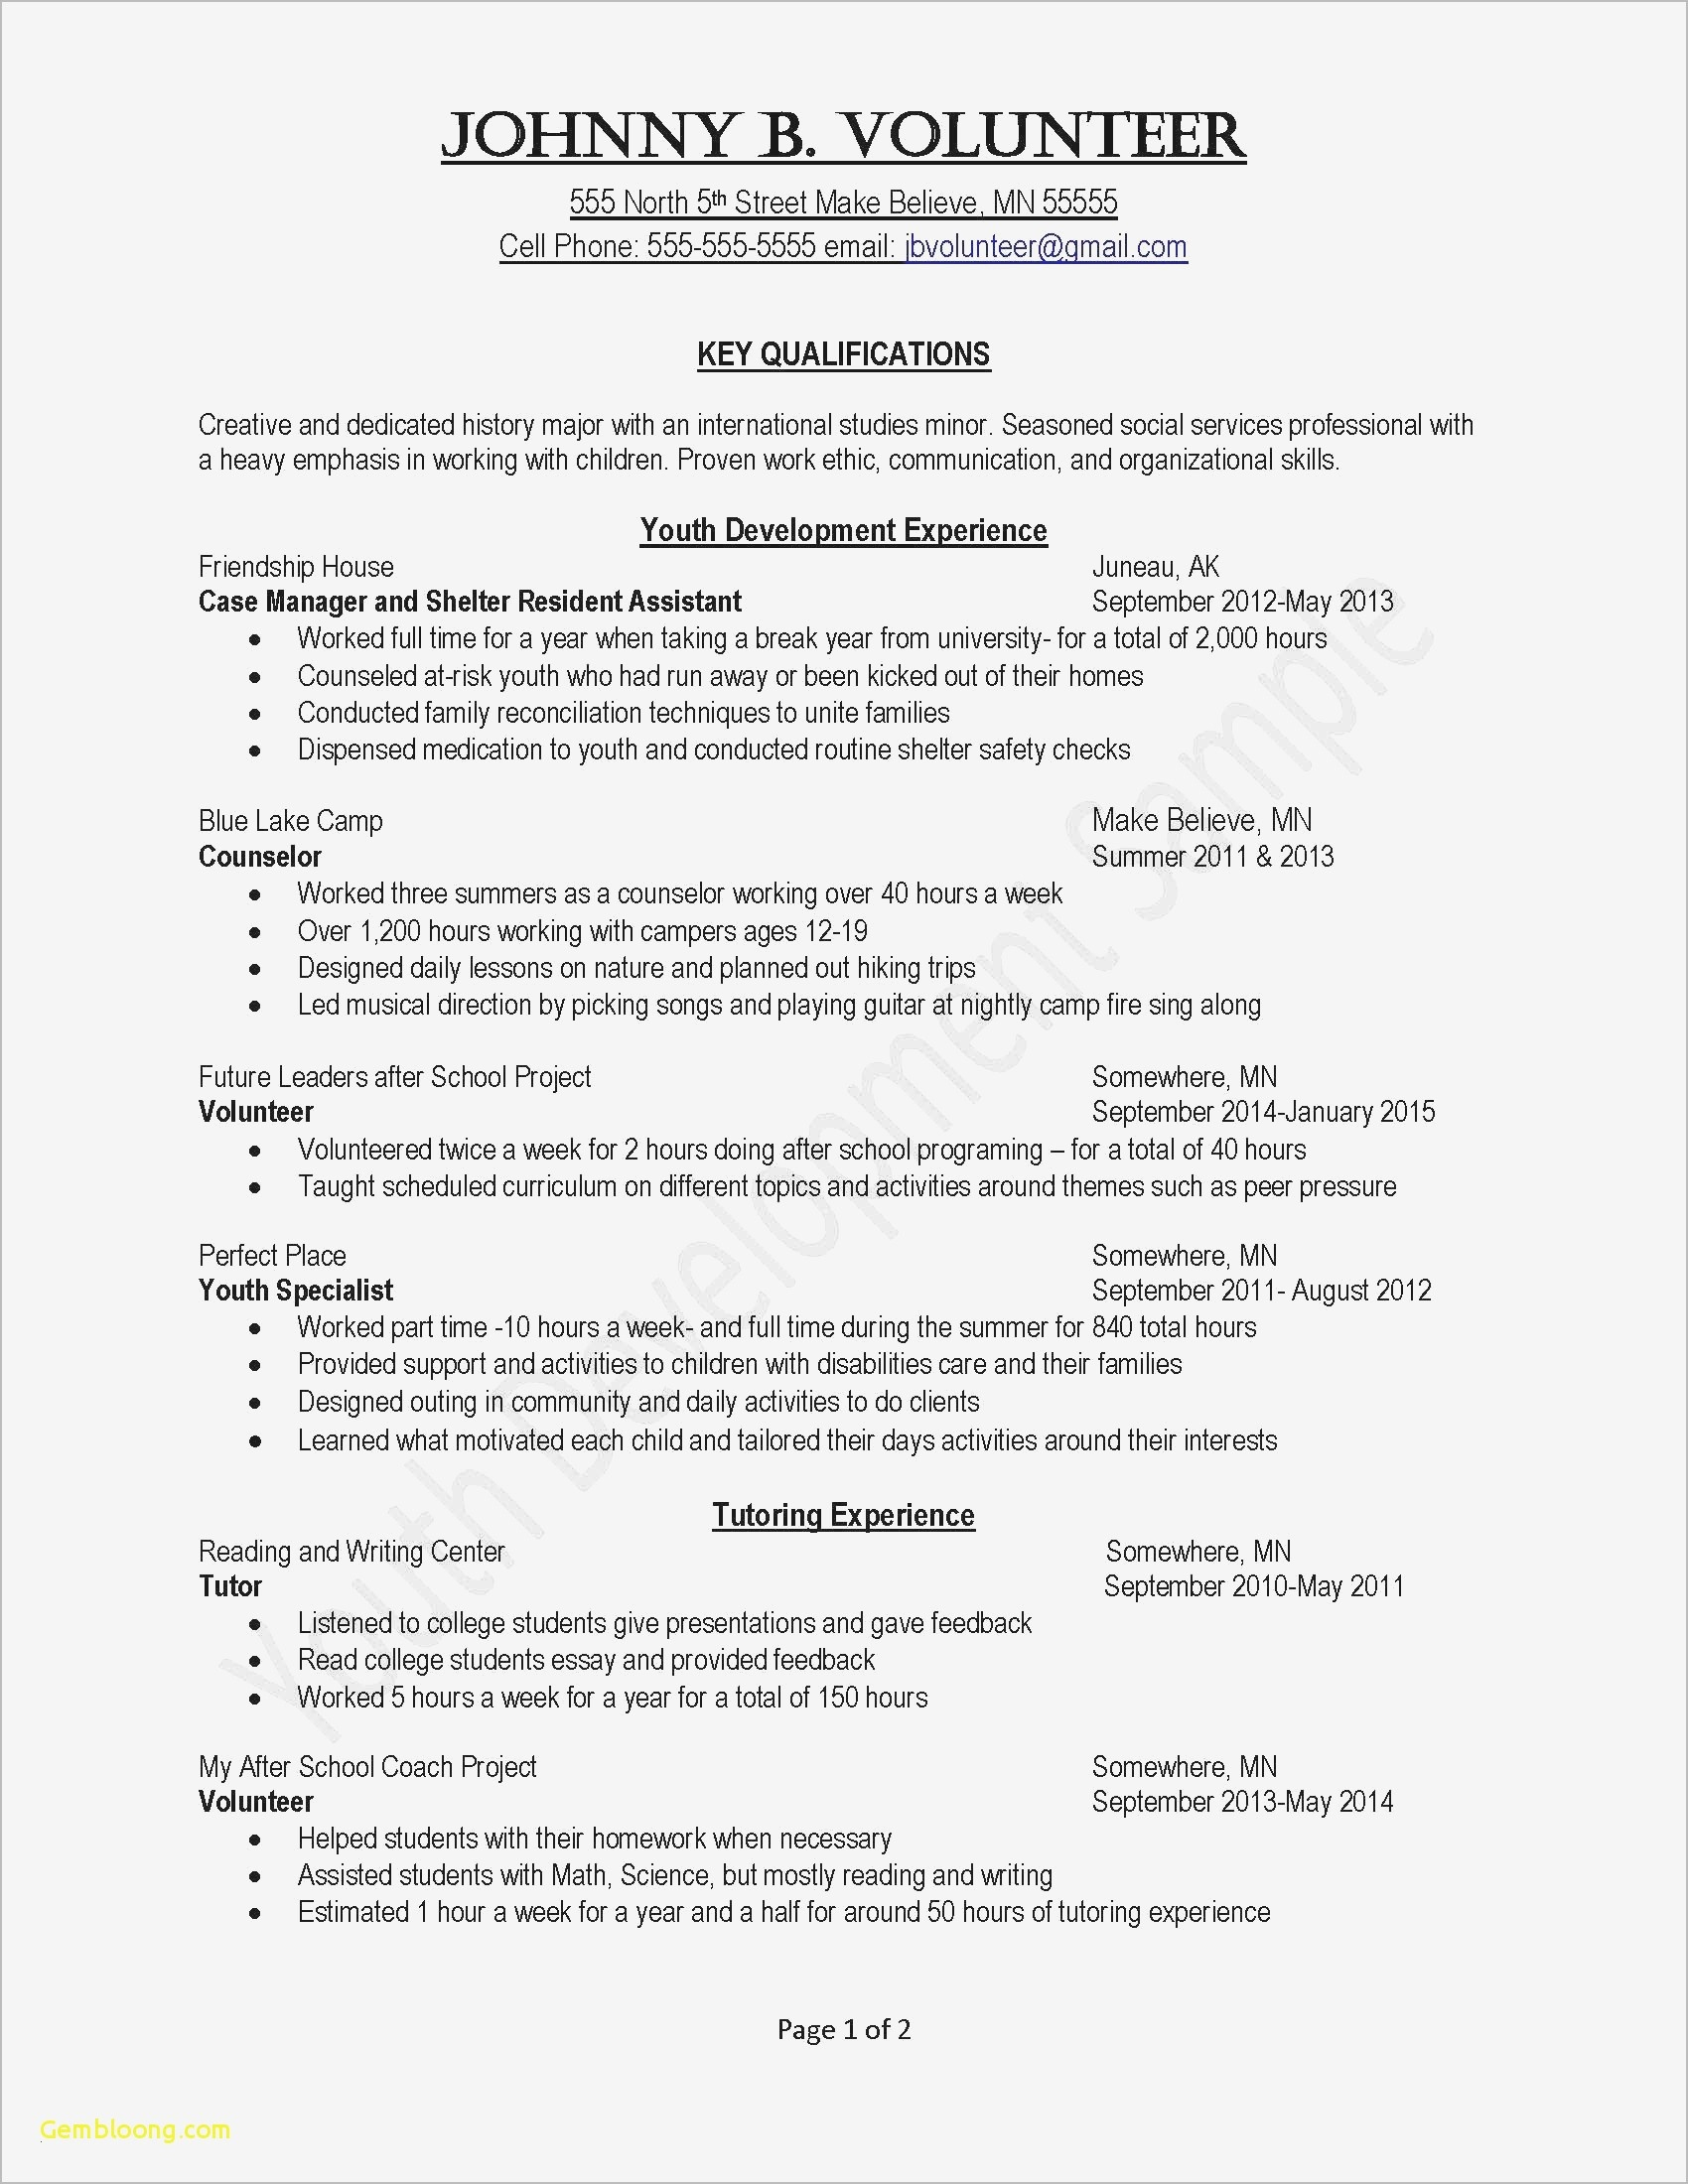 free modern cover letter template Collection-Cover Letter Template Address Copy Modern Cover Letter Template Free Best Od Consultant Cover 1-d